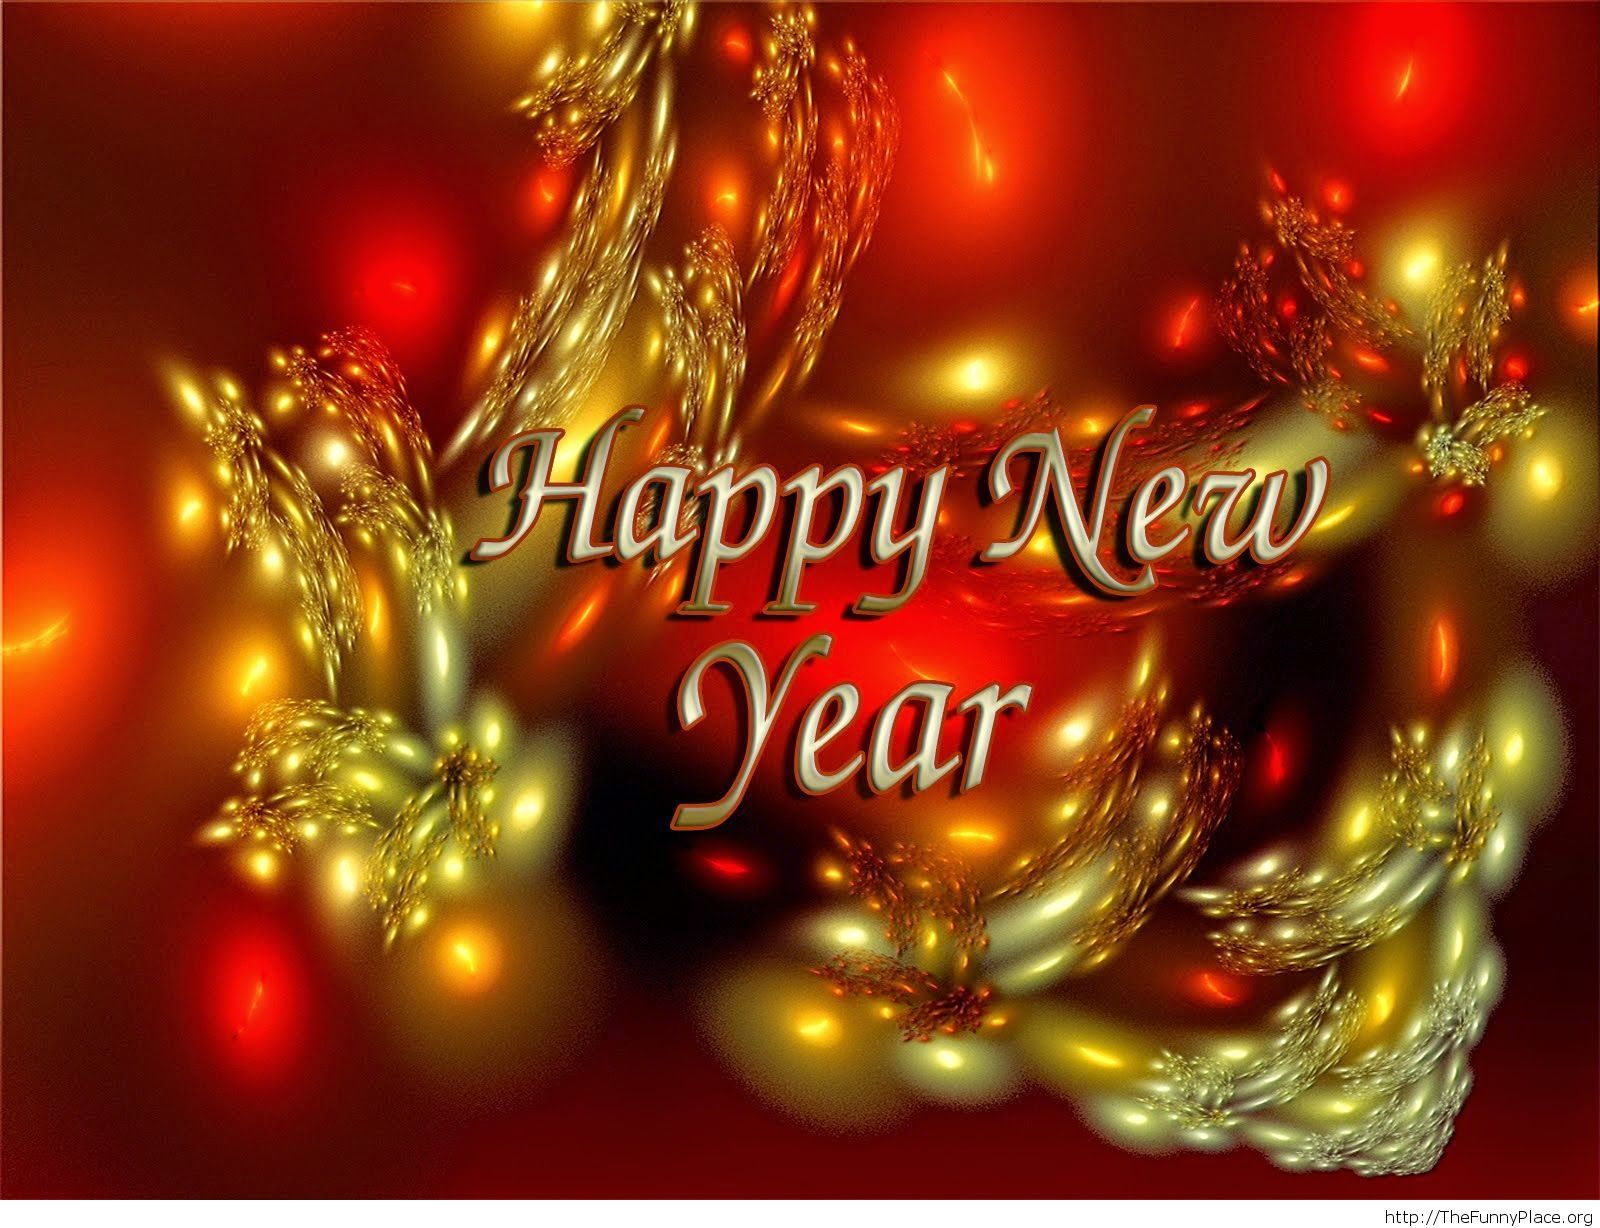 Happy New Year animated wallpaper Hd u2013 TheFunnyPlace